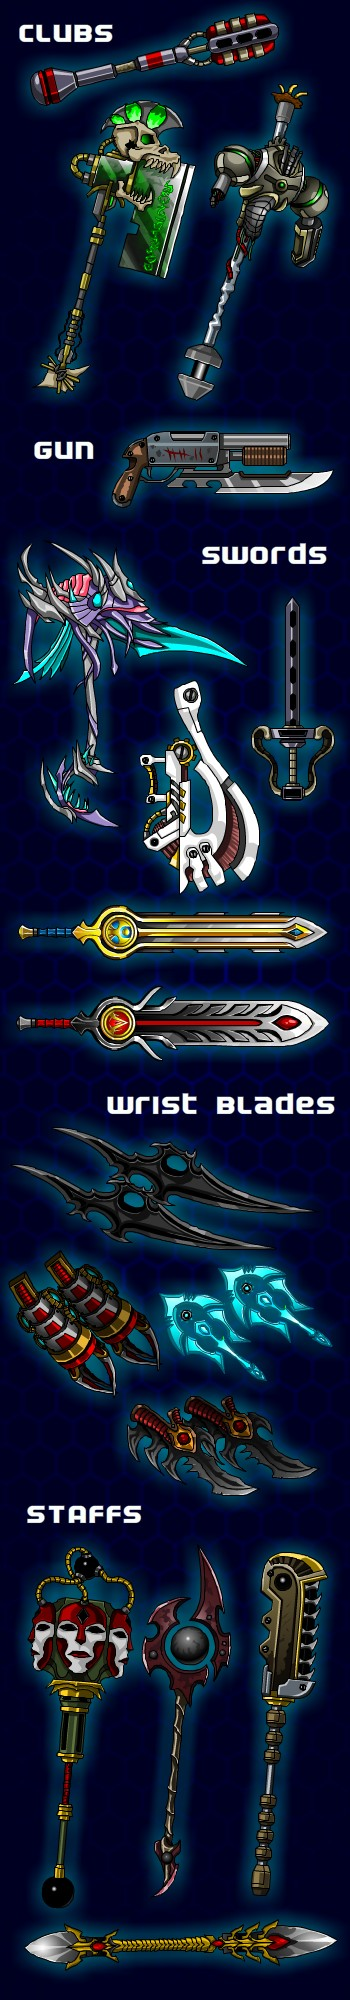 WEAPONS!